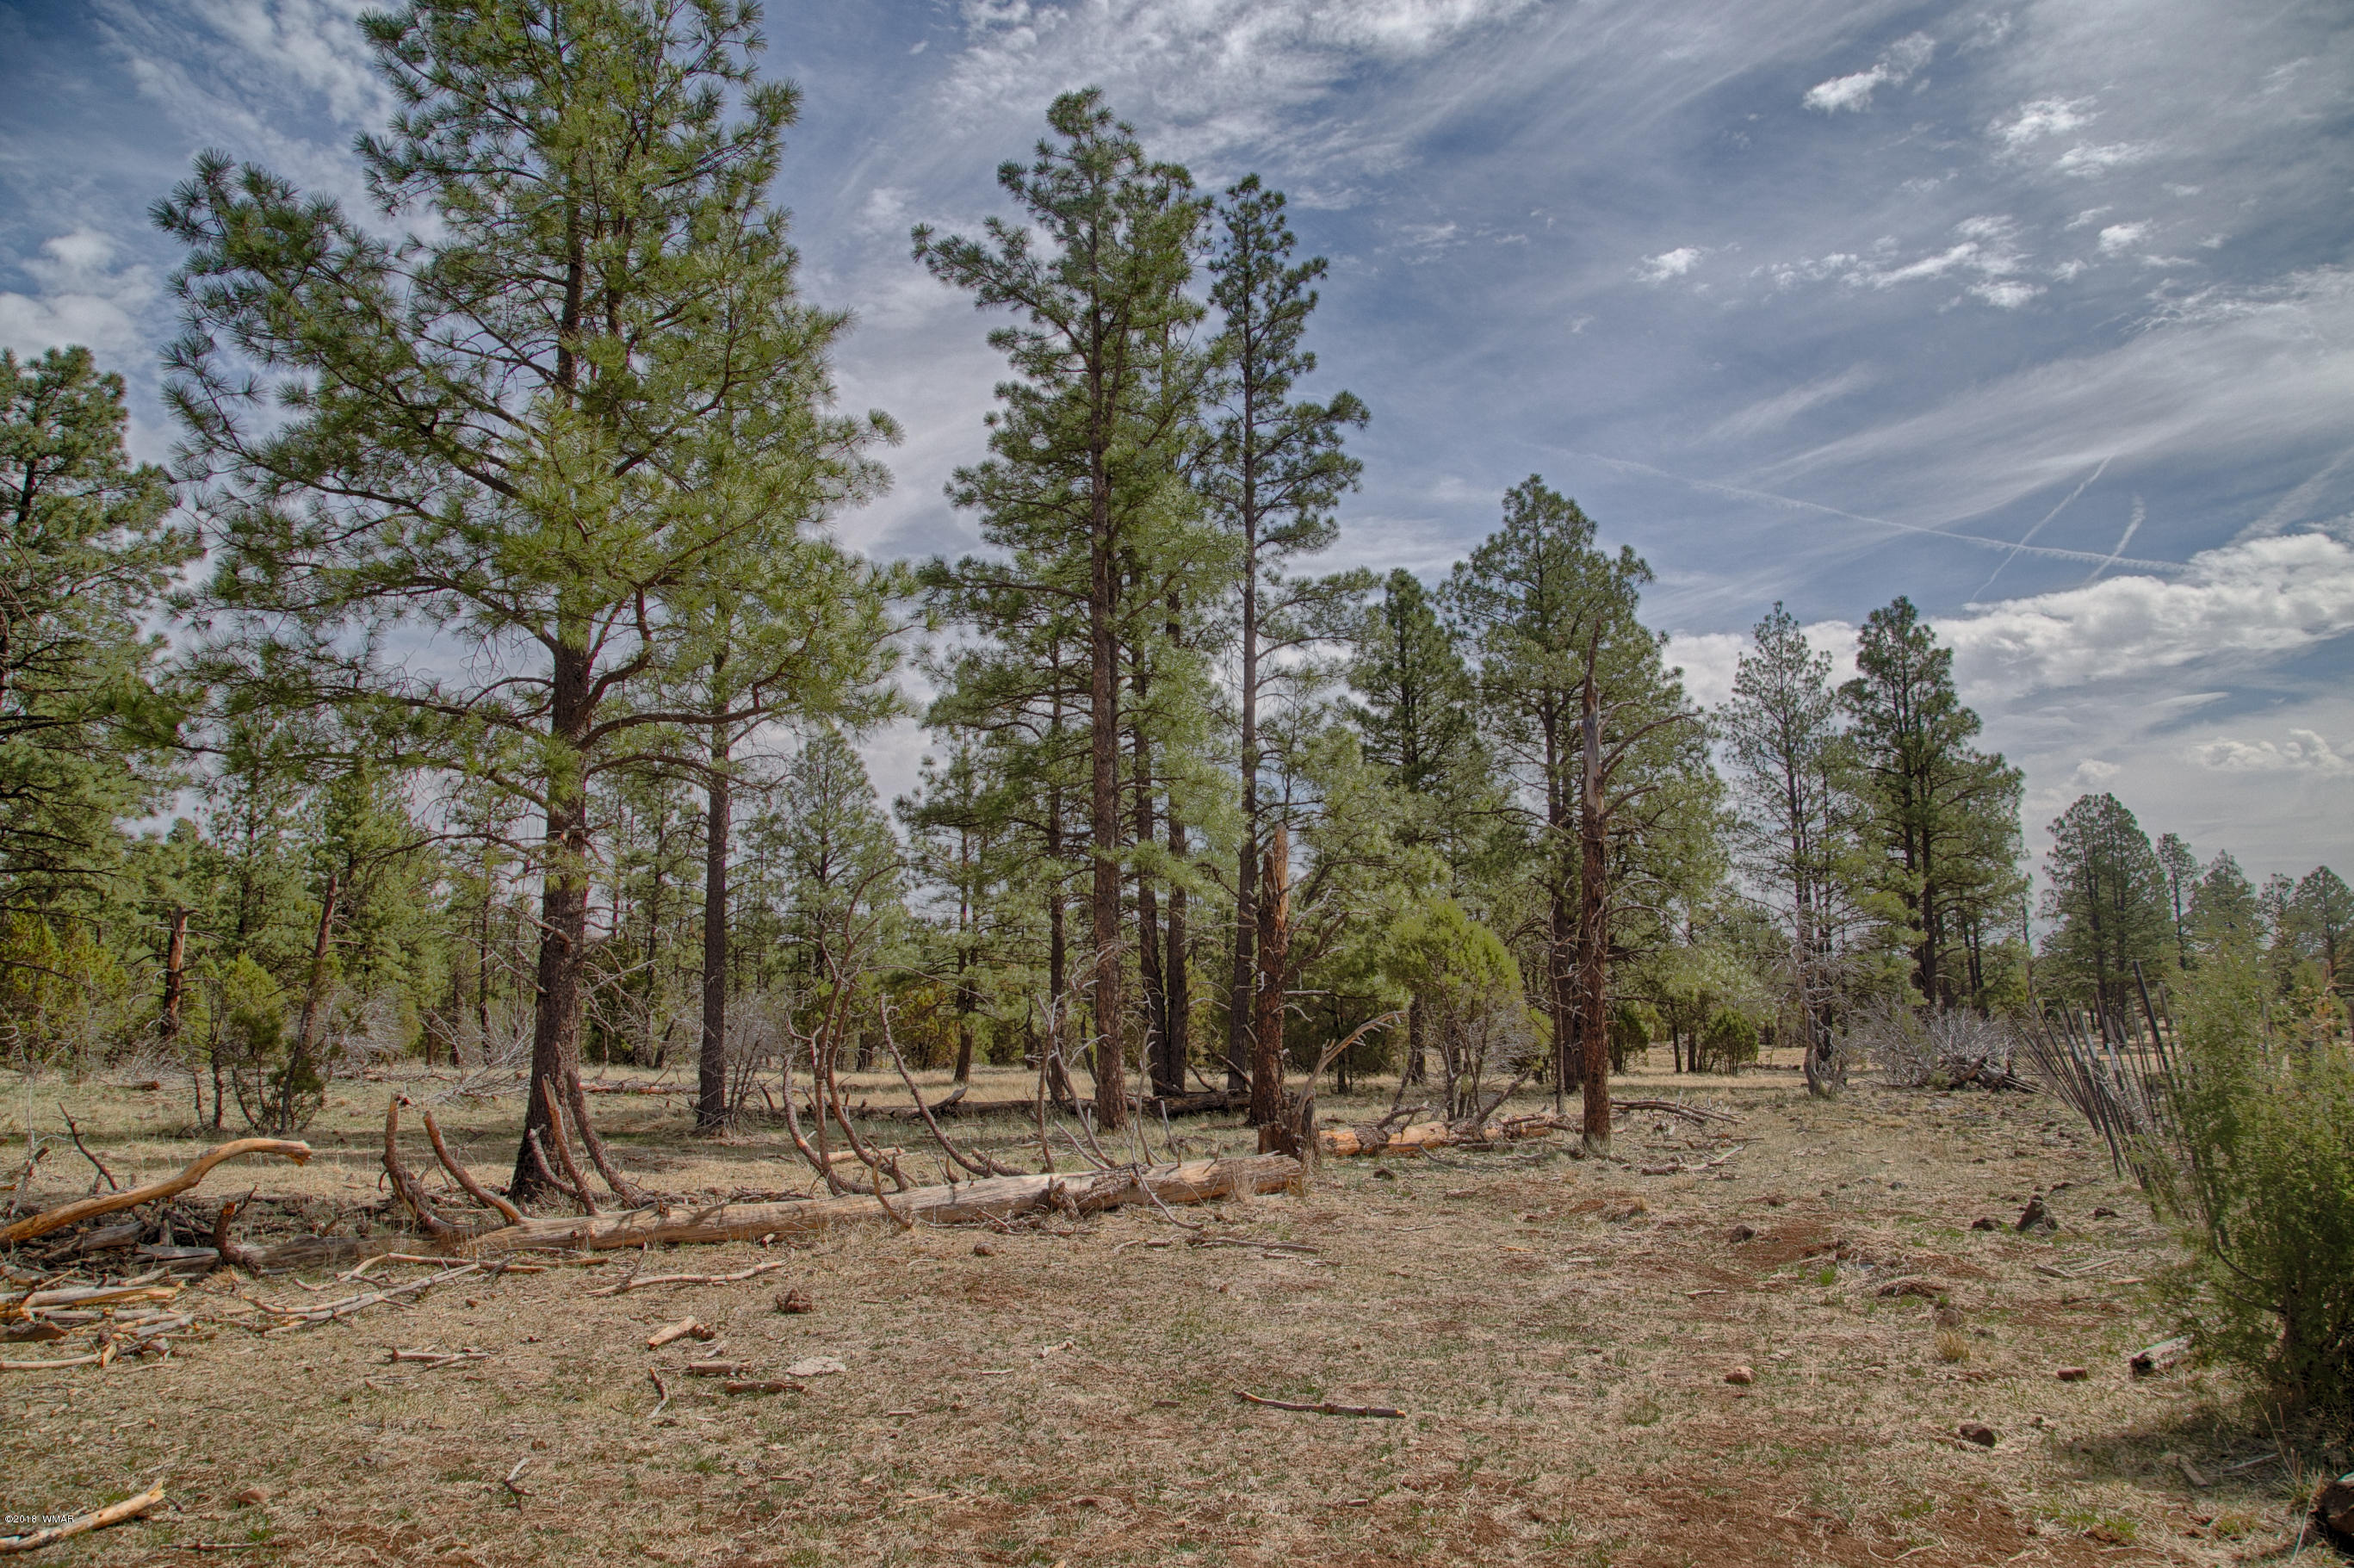 TBD W Coyote Drive, Lakeside, Arizona 85929, ,Lots And Land,For Sale,TBD W Coyote Drive,231978